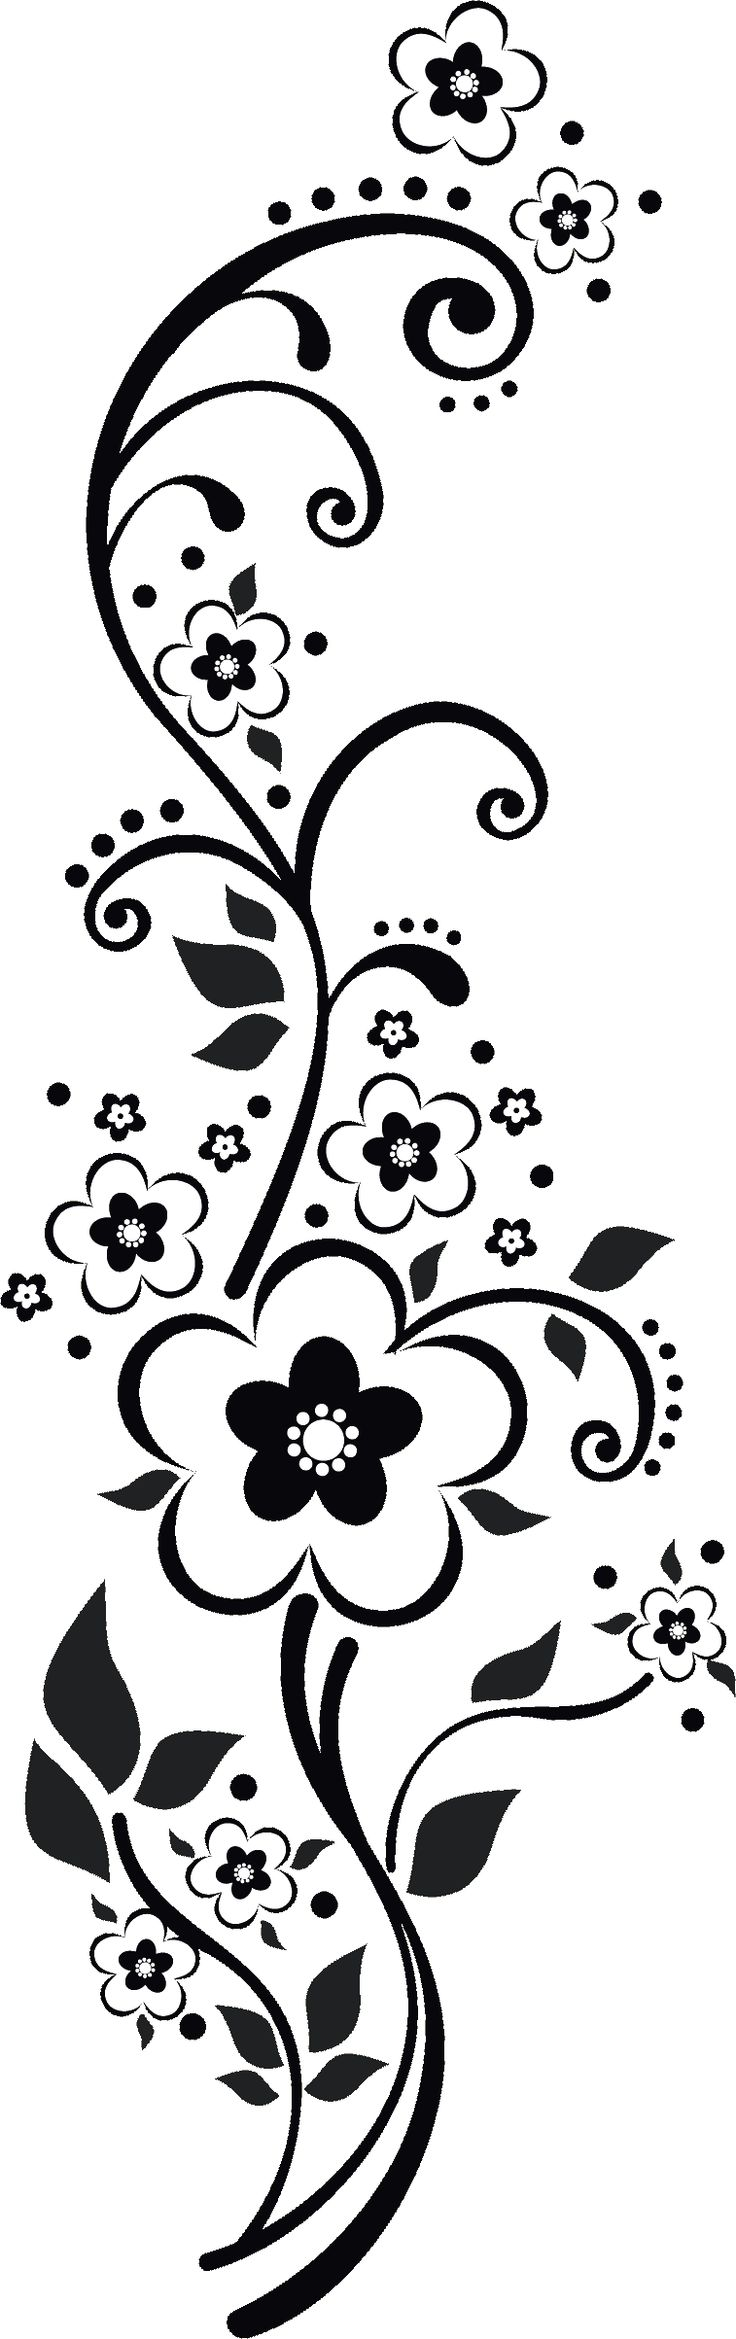 Flowers Design Black And White Png.